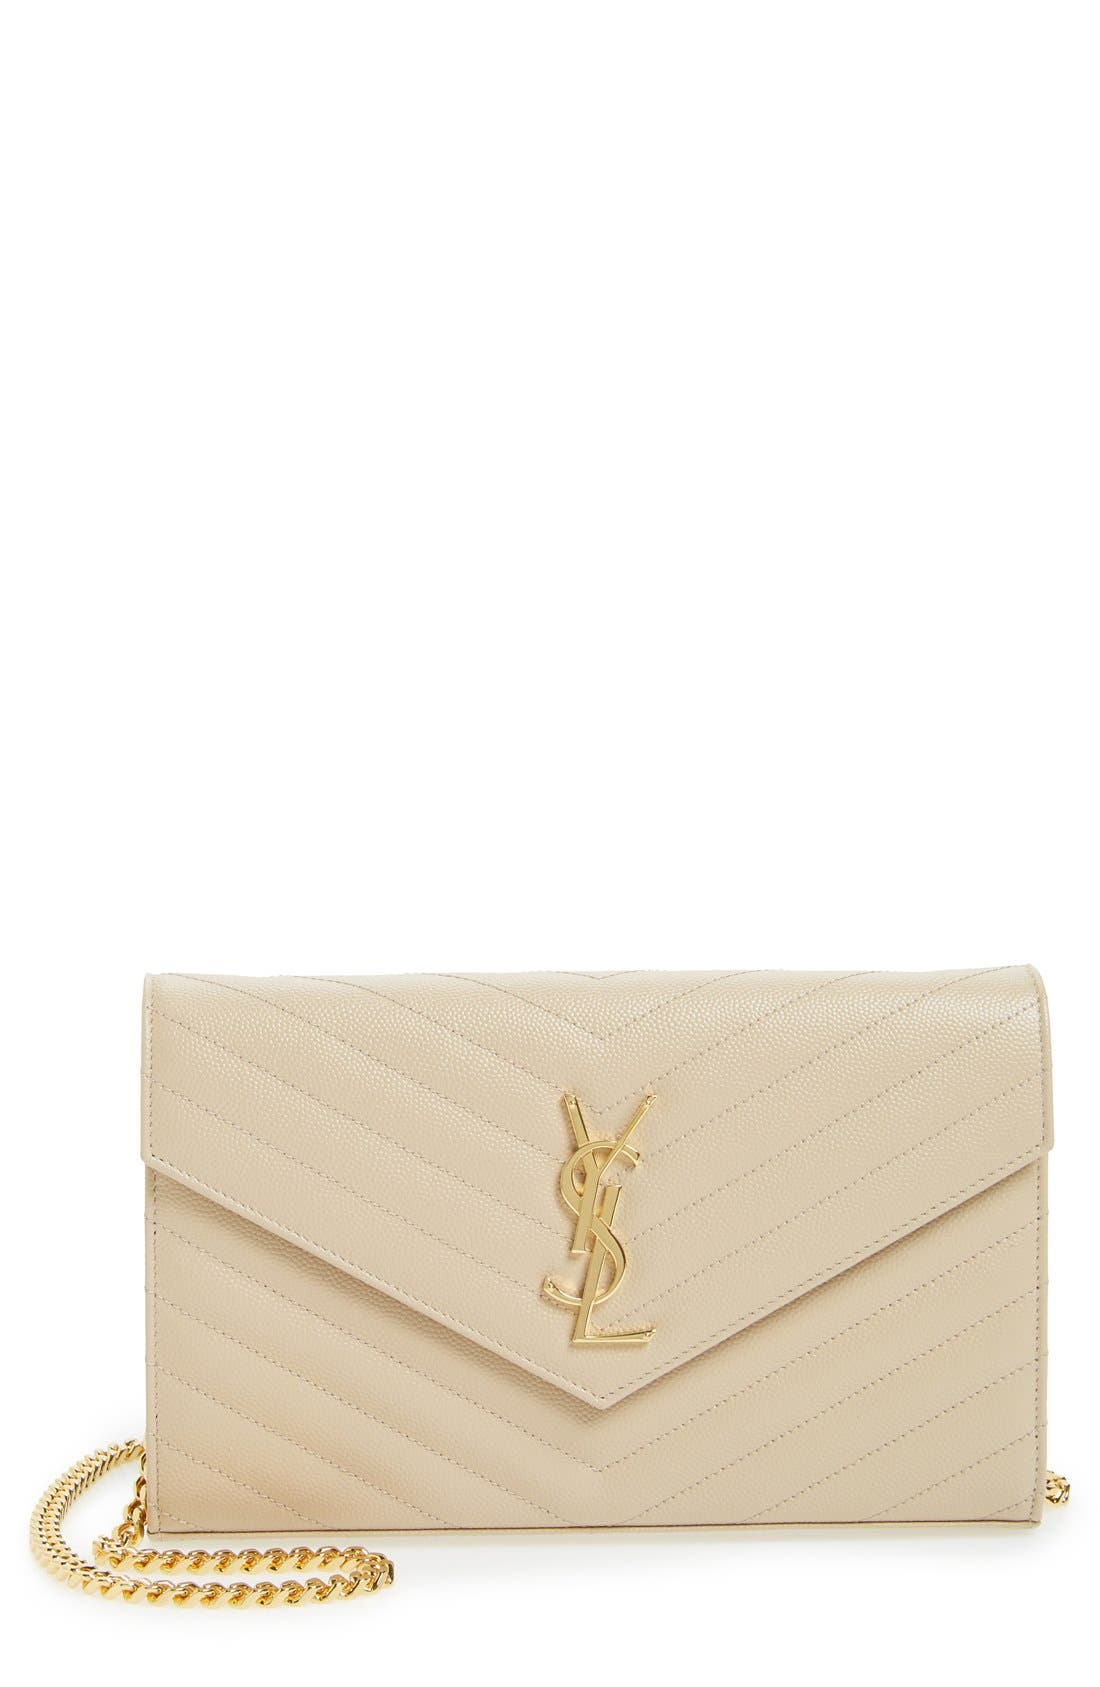 SAINT LAURENT 'Large Monogram' Quilted Leather Wallet on